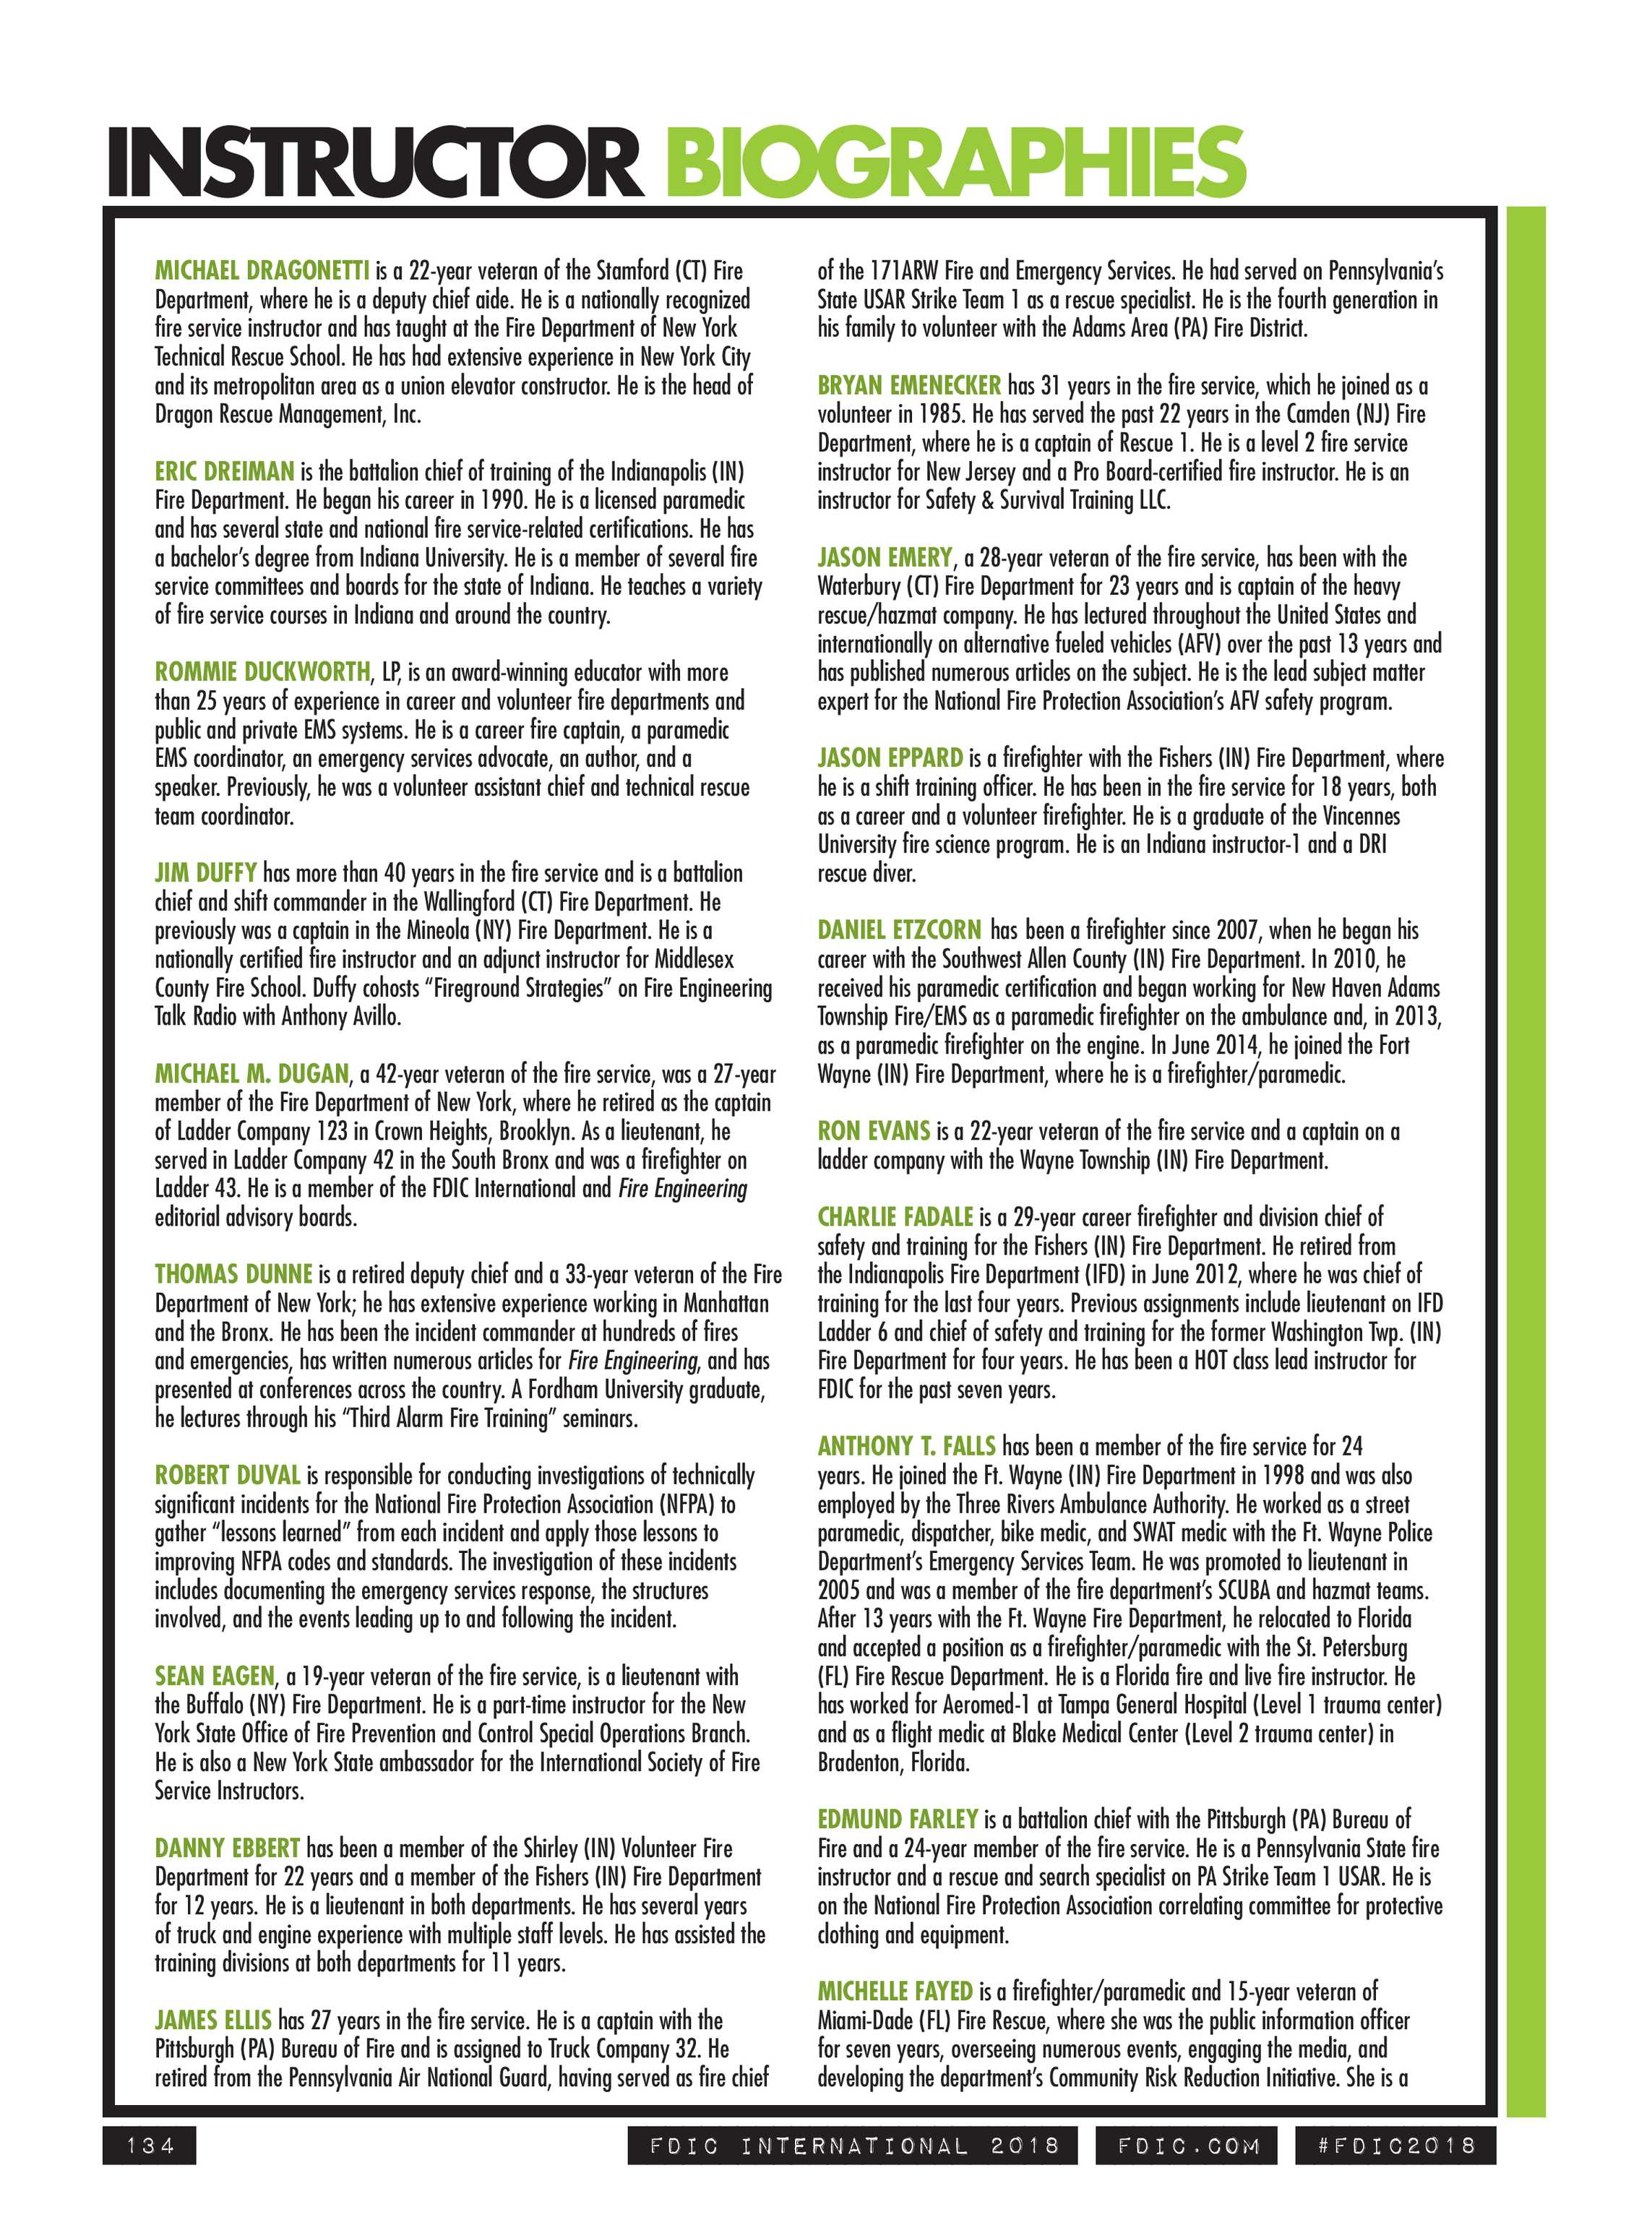 Pennwell Supplements Fdic 2018 Show Guide Non Listings Page 134